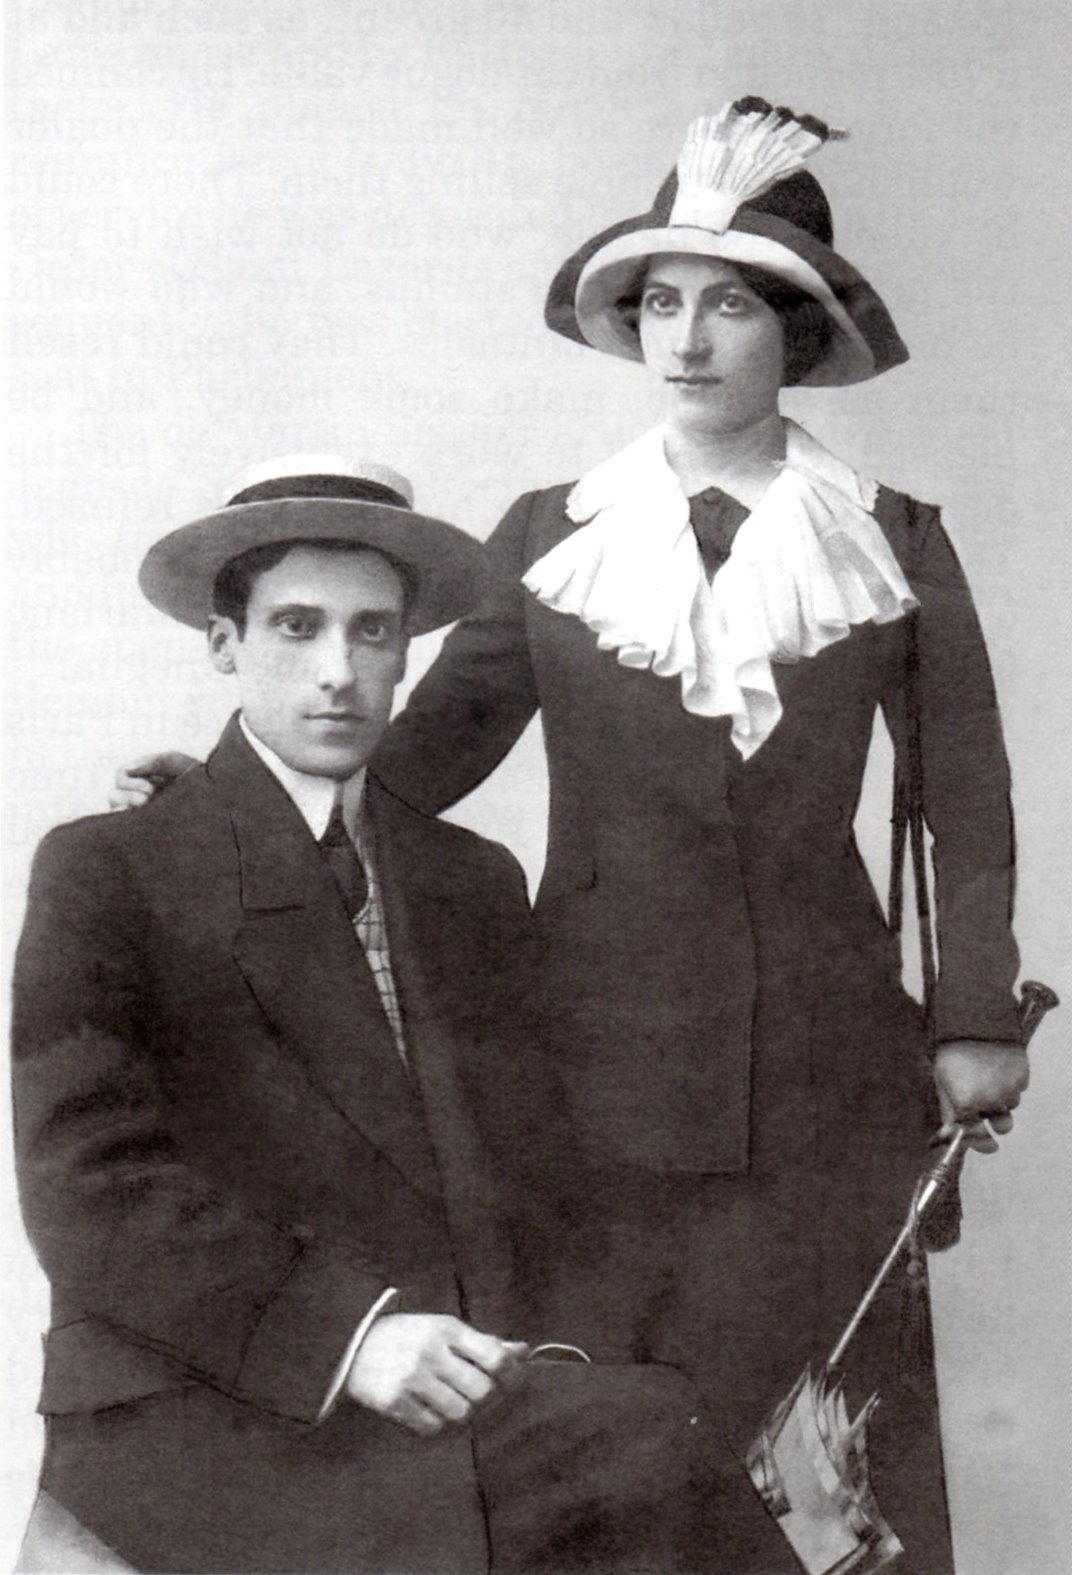 Jean de Sperati and his wife Marie Louise Corne. The photo was taken on the occasion of their wedding in Paris in 1914. From: https://en.wikipedia.org/wiki/Jean_de_Sperati